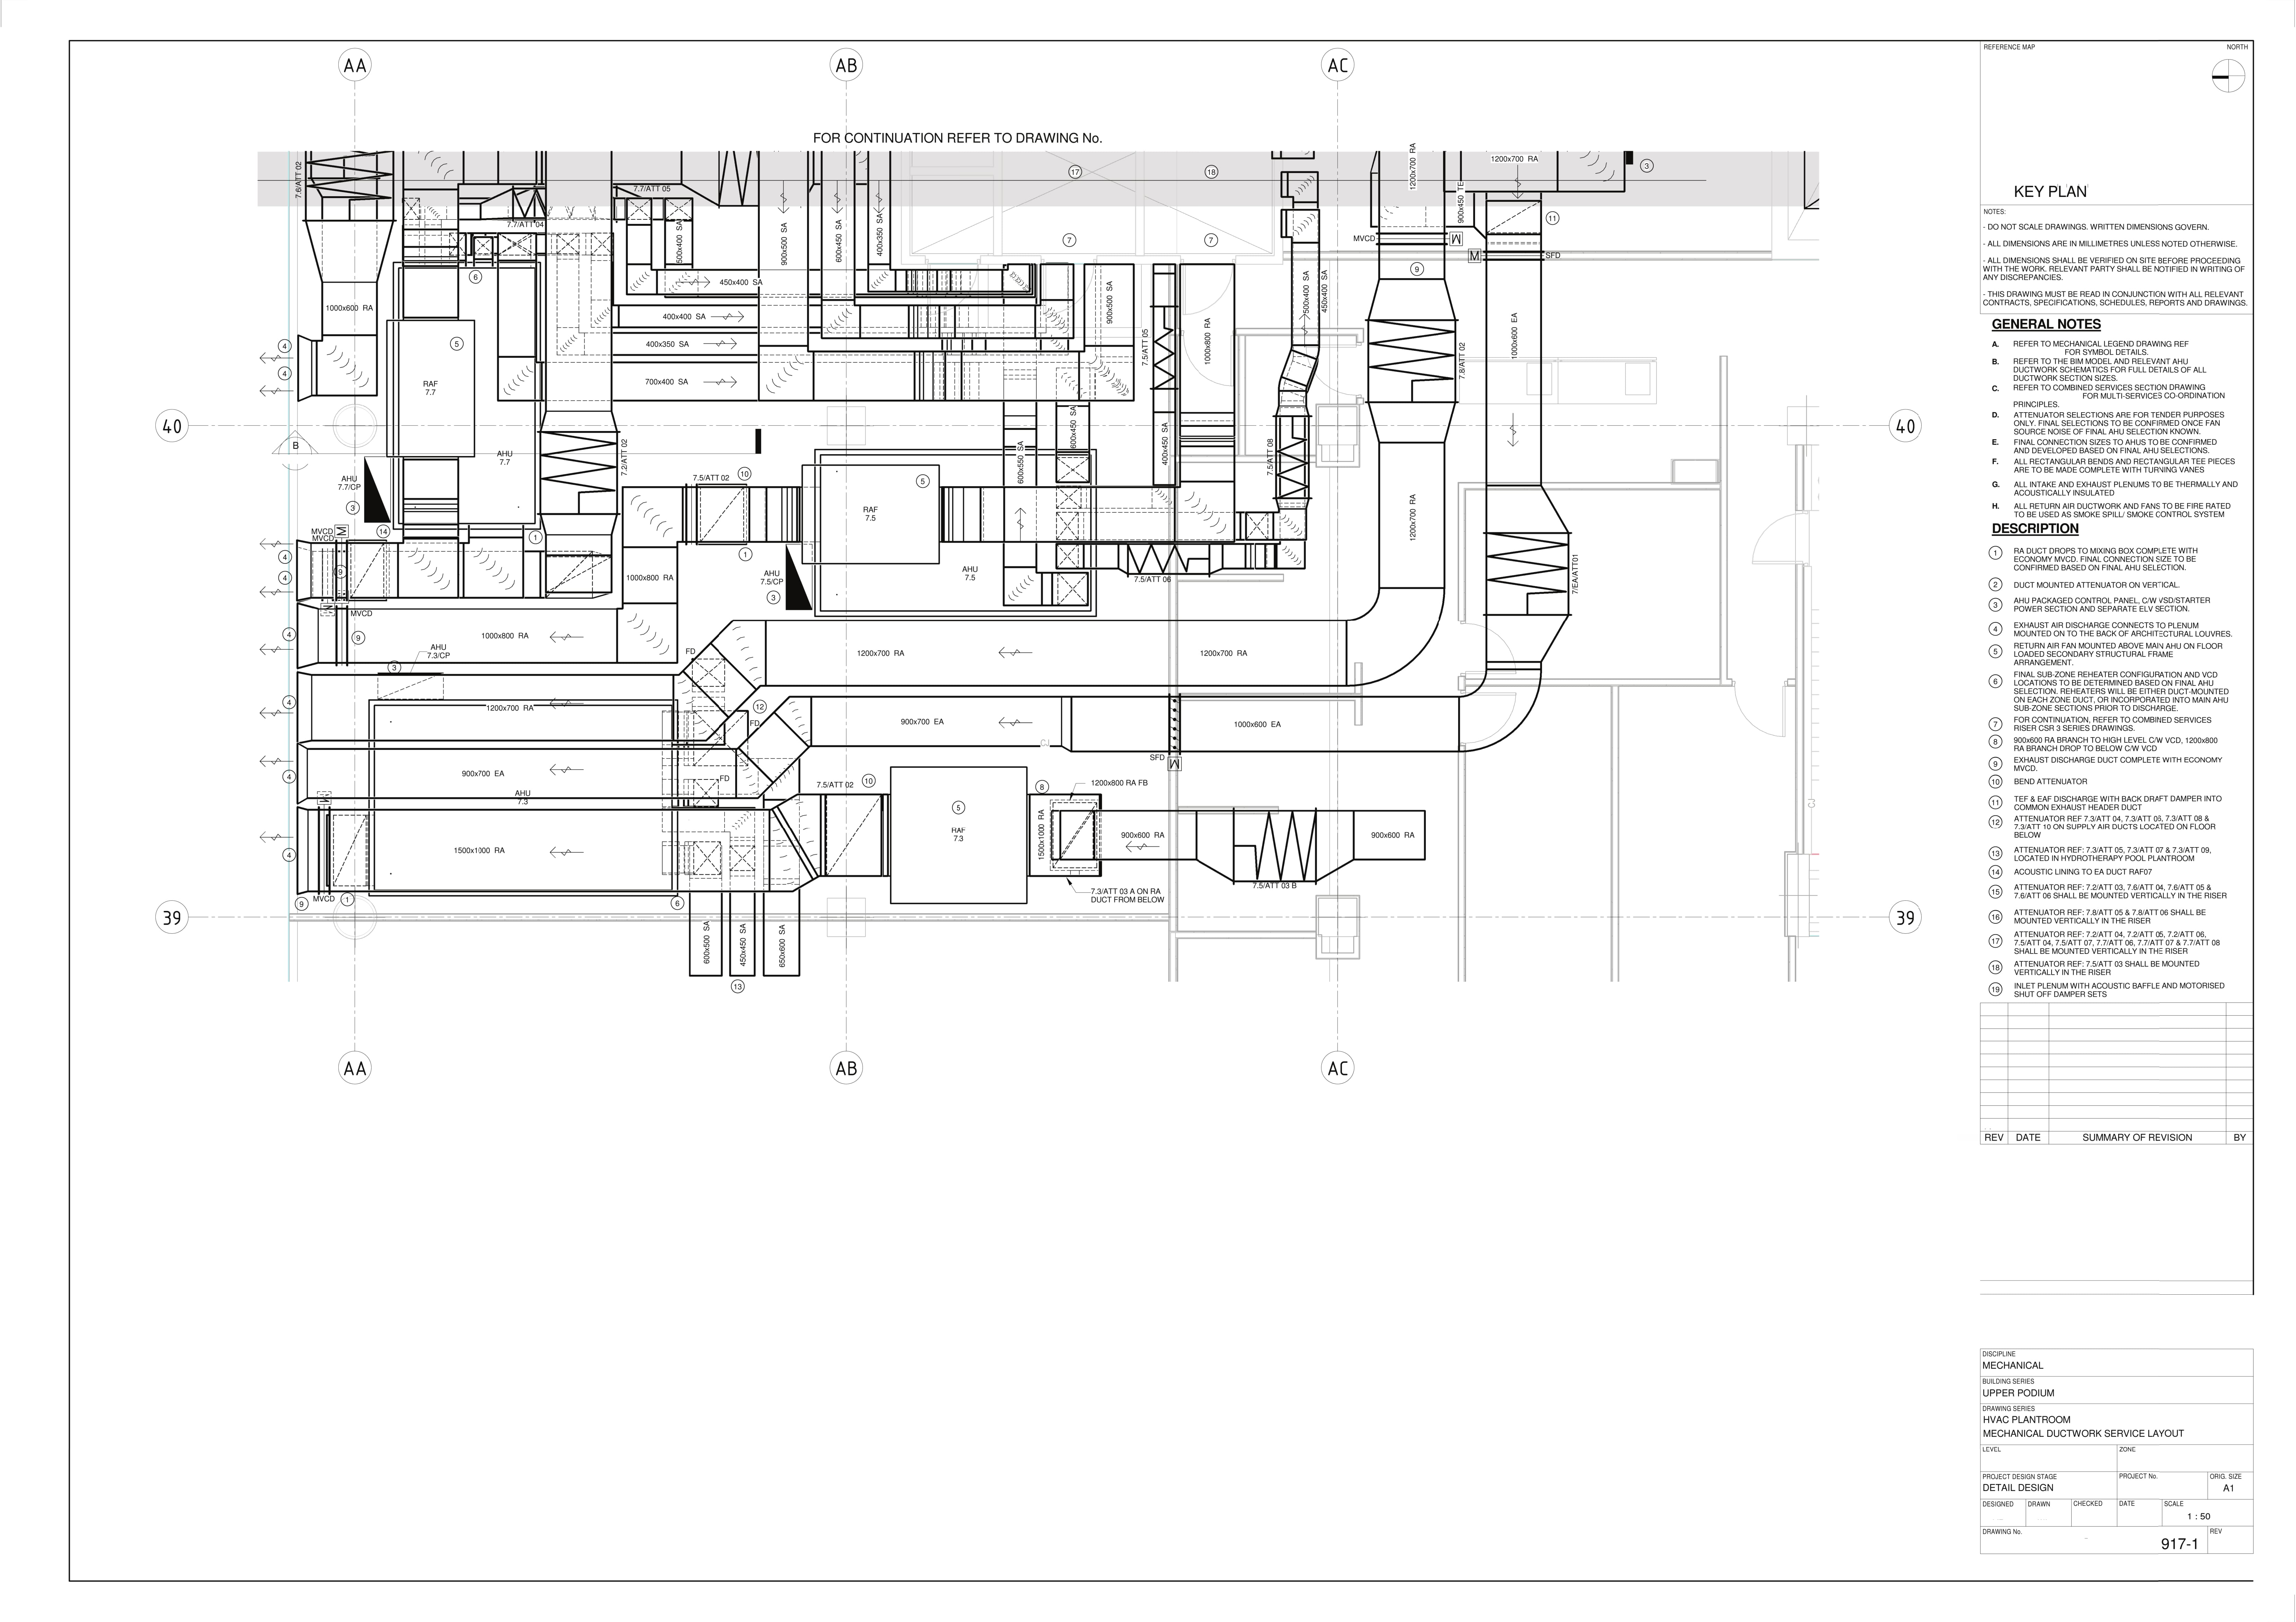 Mechanical Ductwork Service Layout 1